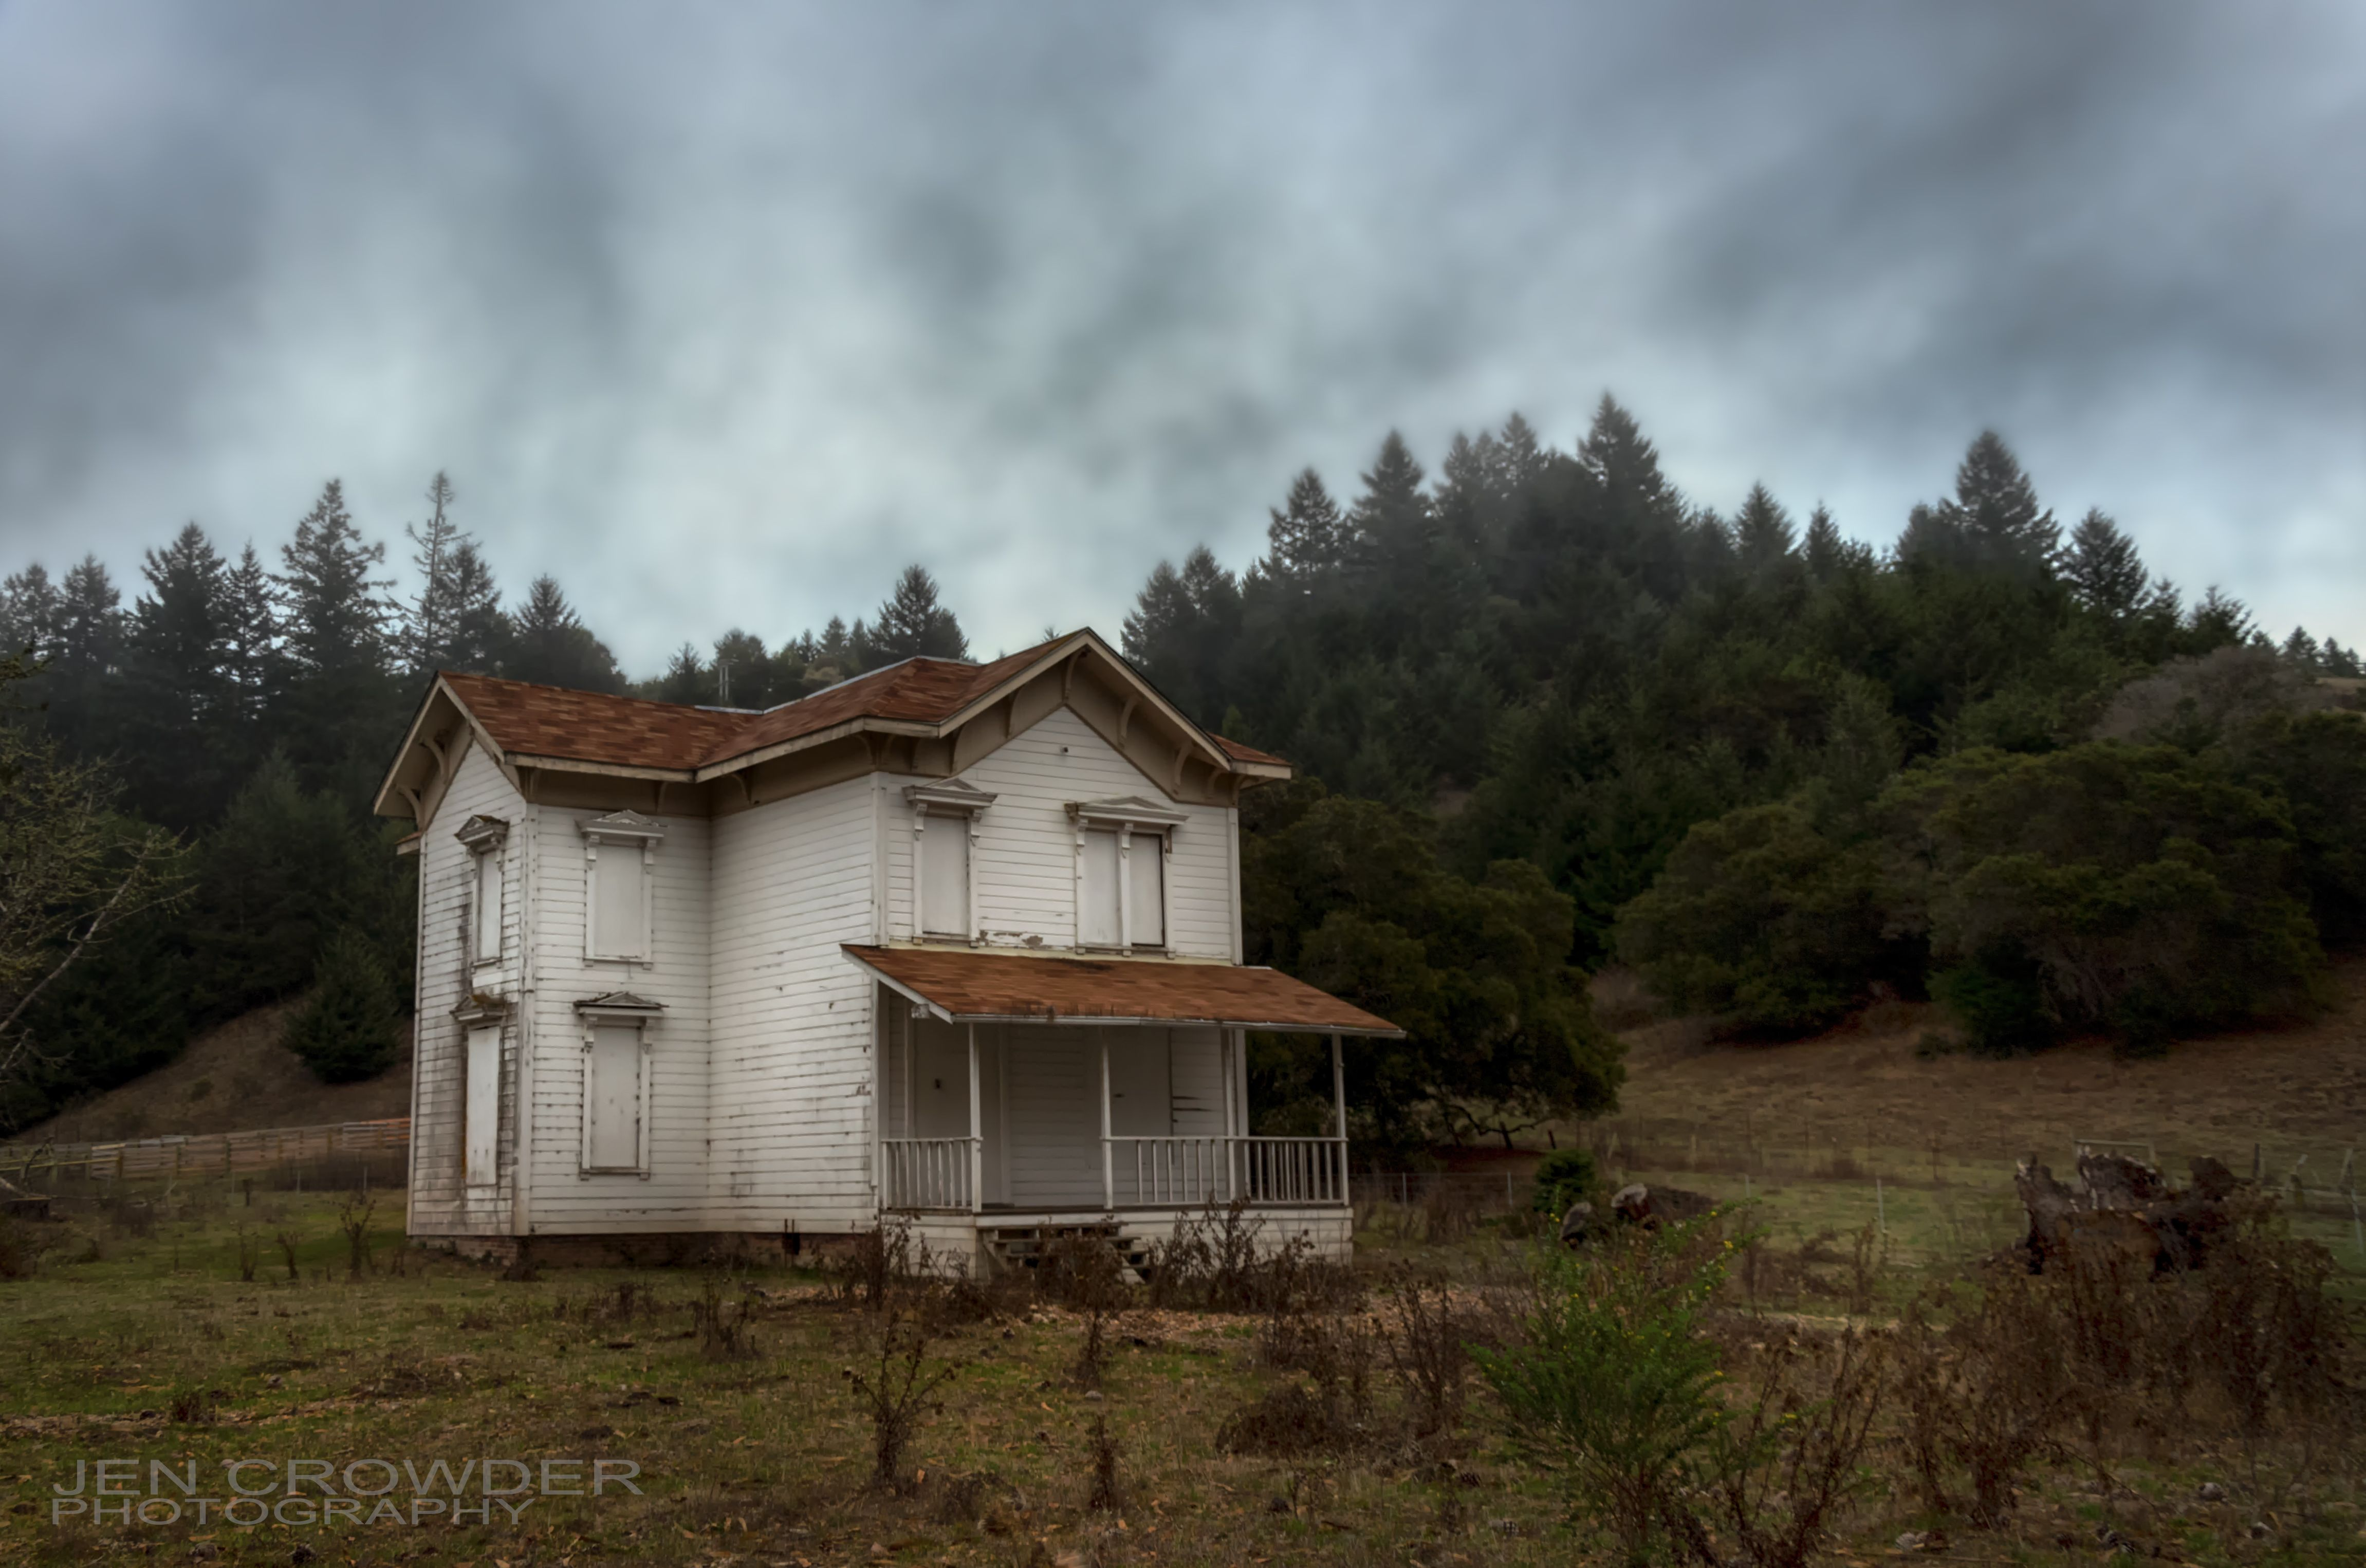 A little abandoned farm house on my way to wine country.